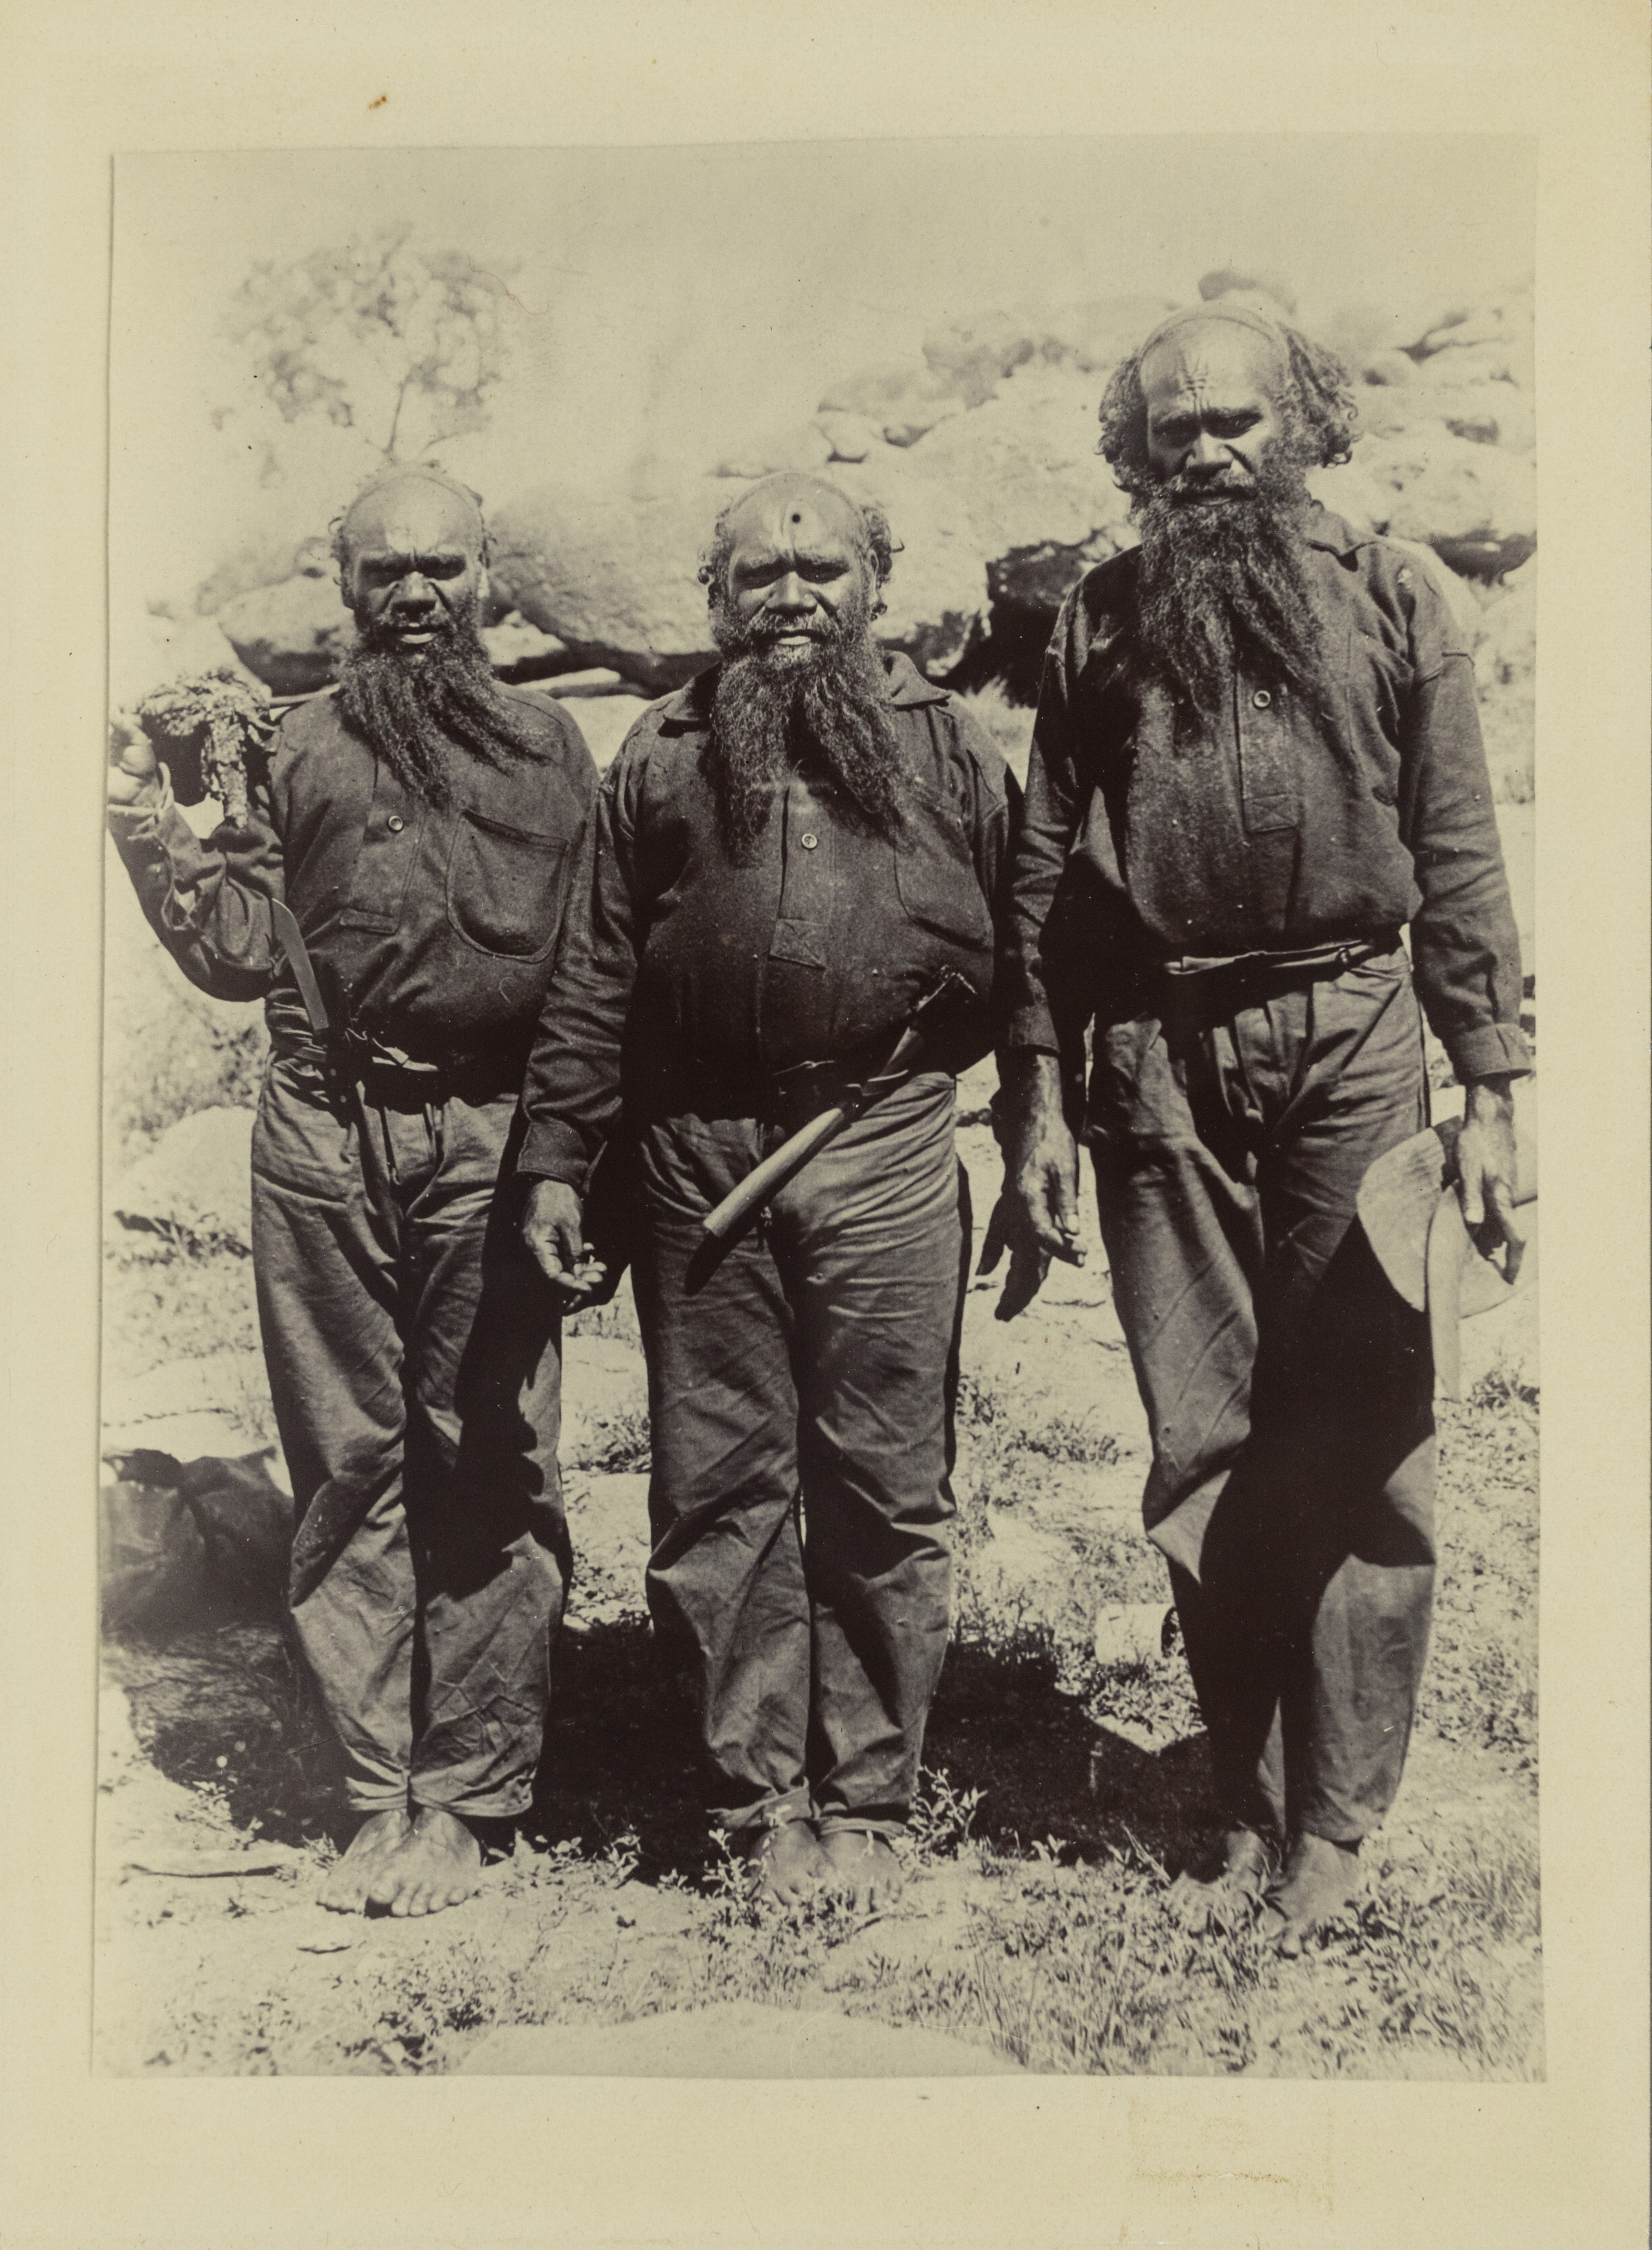 Depicts three older Aboriginal men.